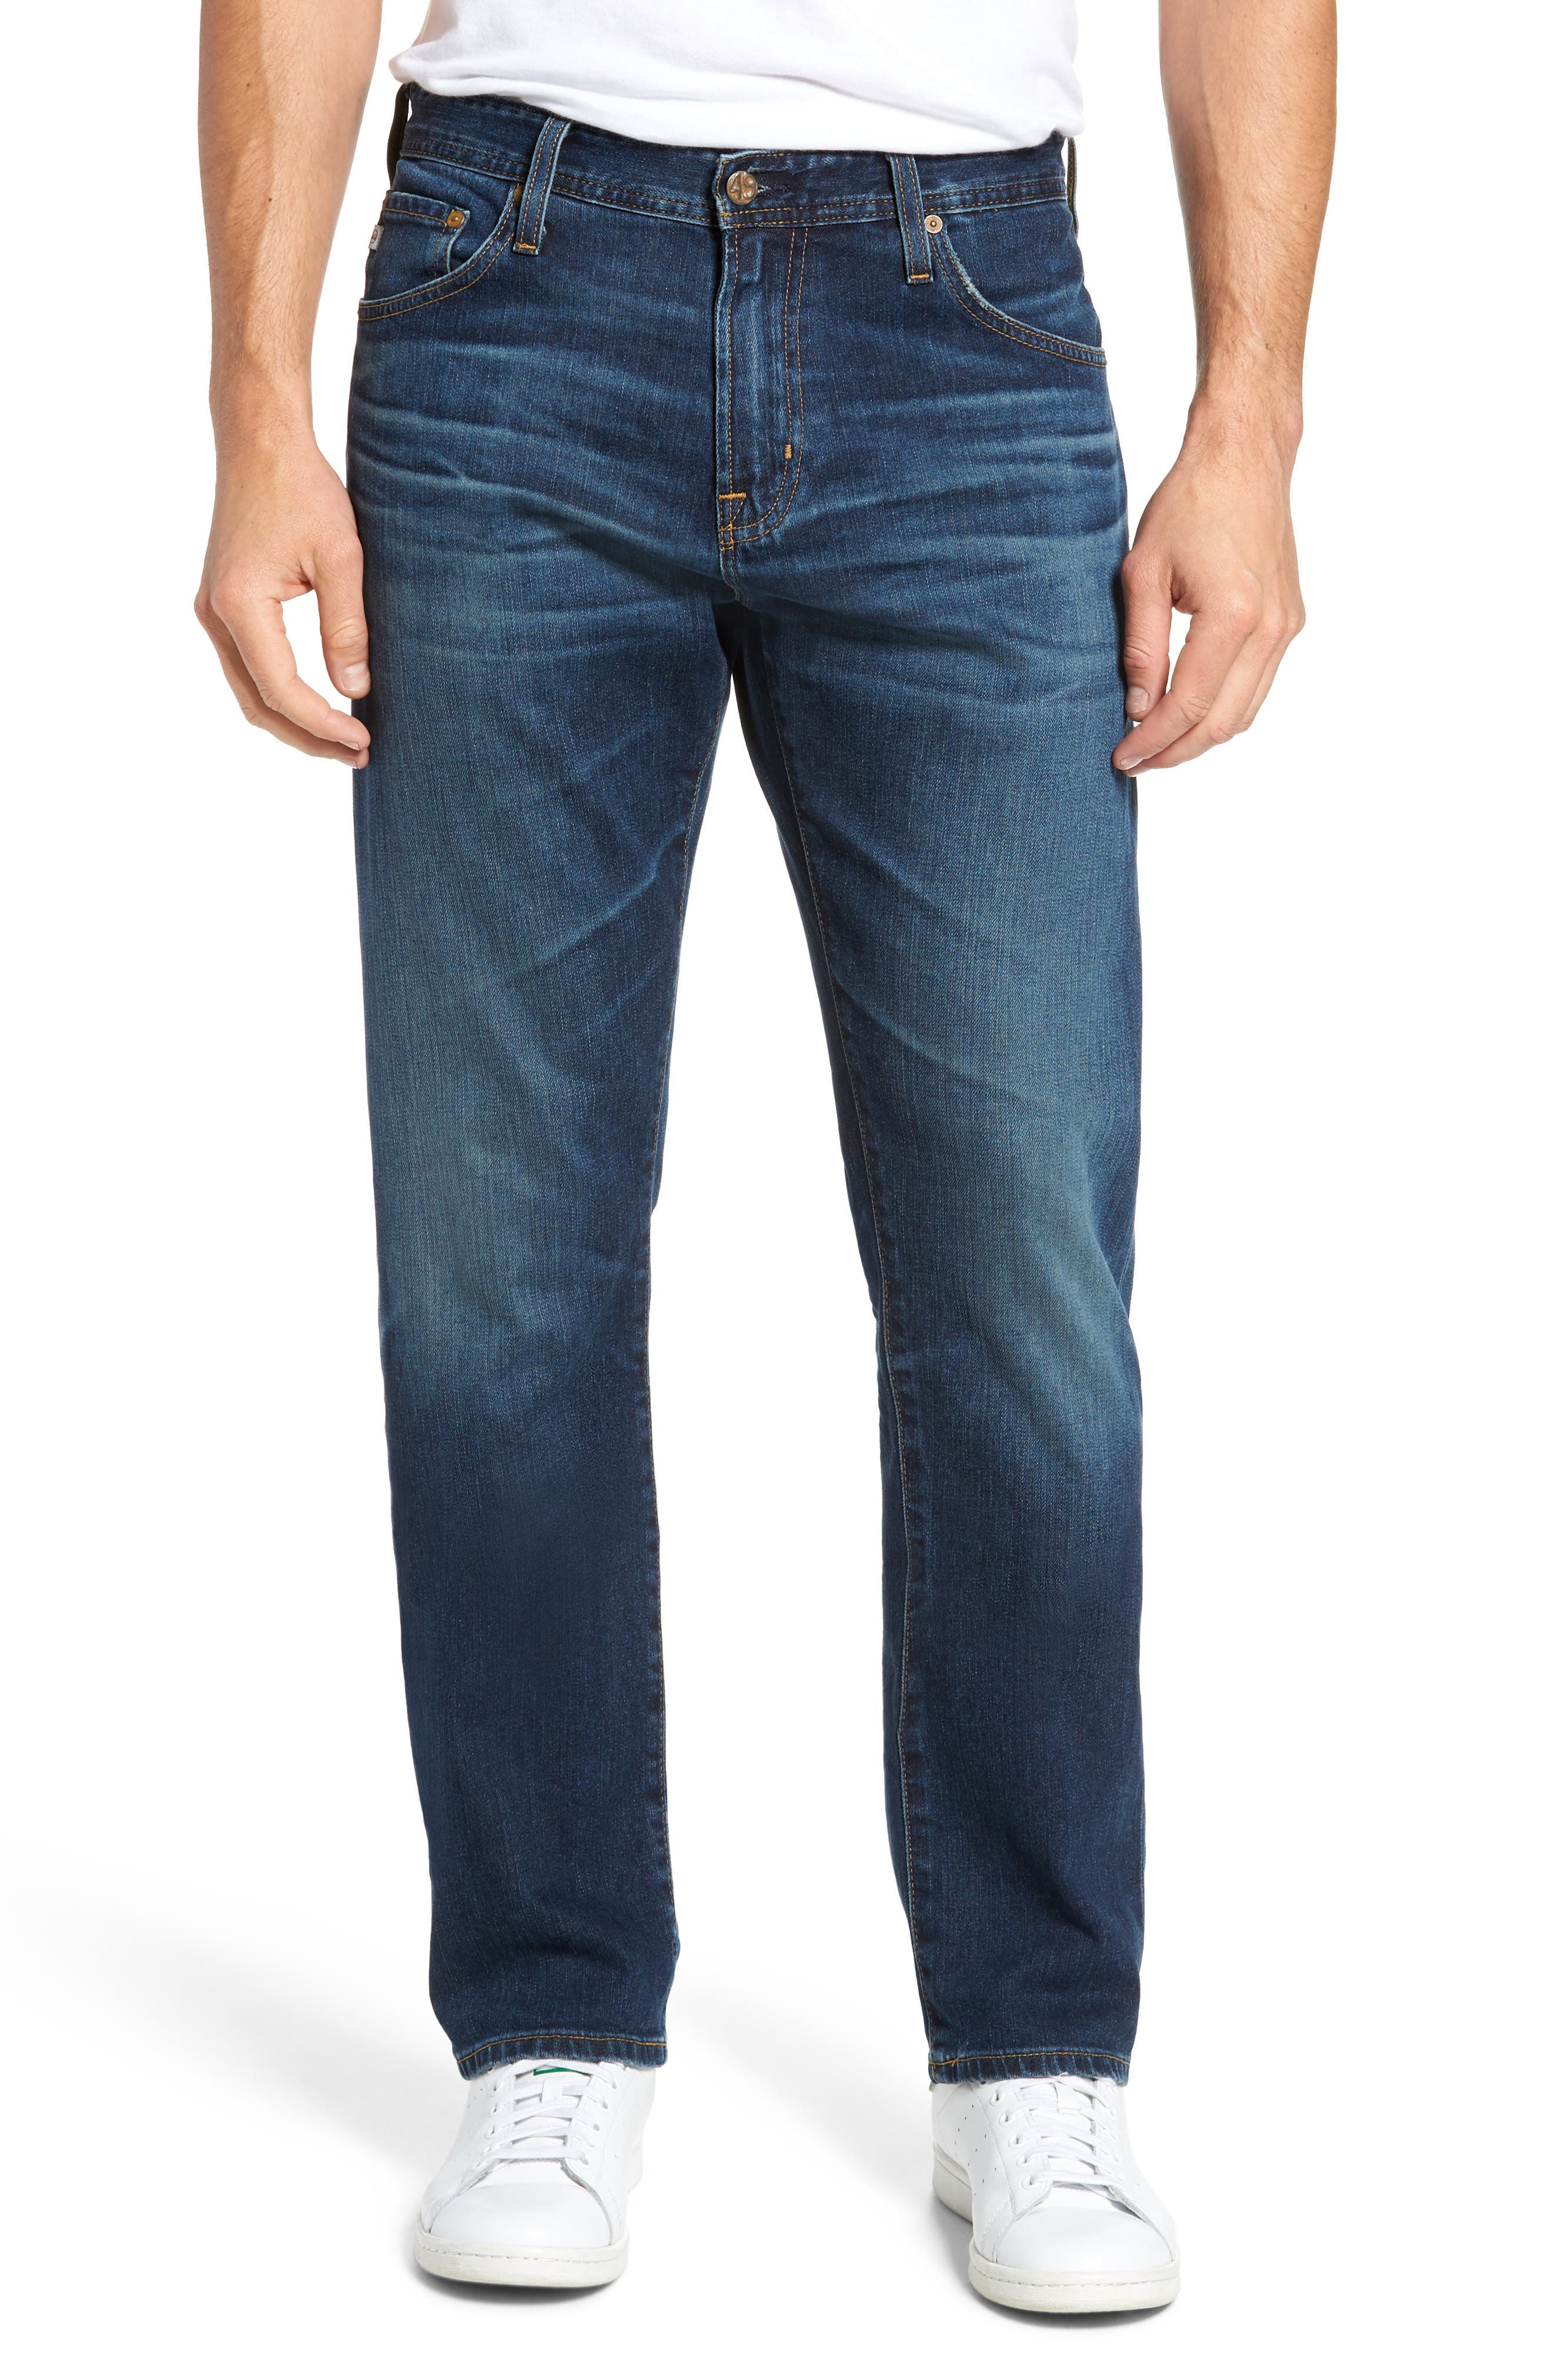 Ives Straight Leg Jeans,                         Main,                         color, 478